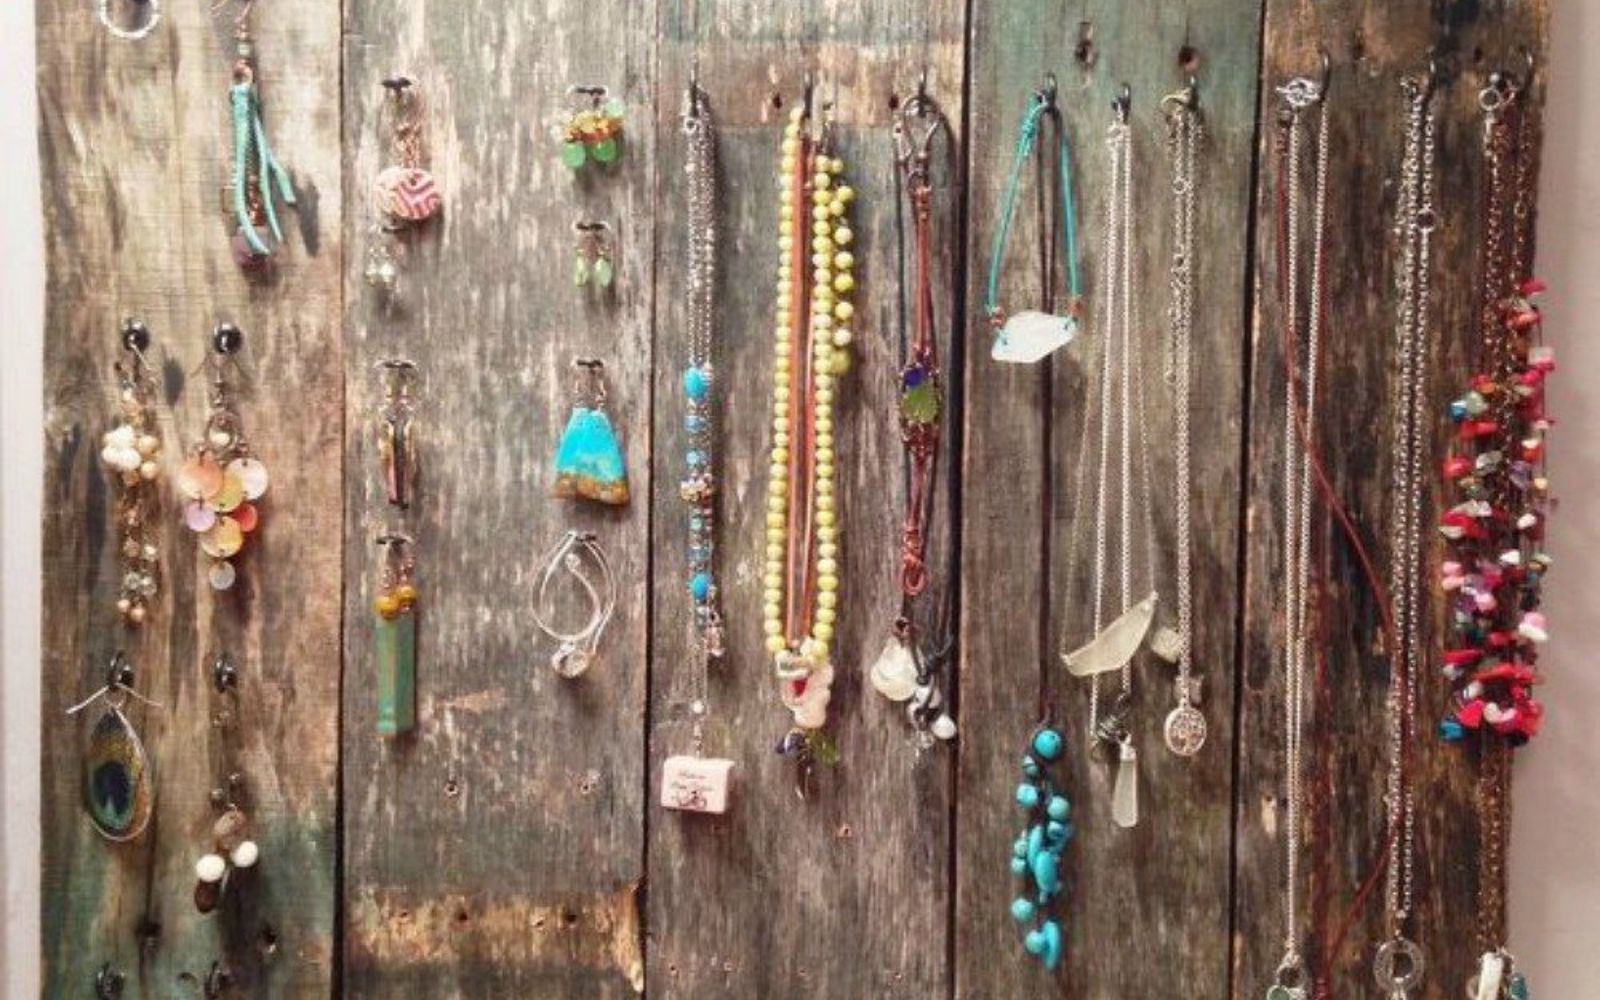 s 21 jewelry organizing ideas that are better than a jewelry box, organizing, This rustic pallet board with metal hooks